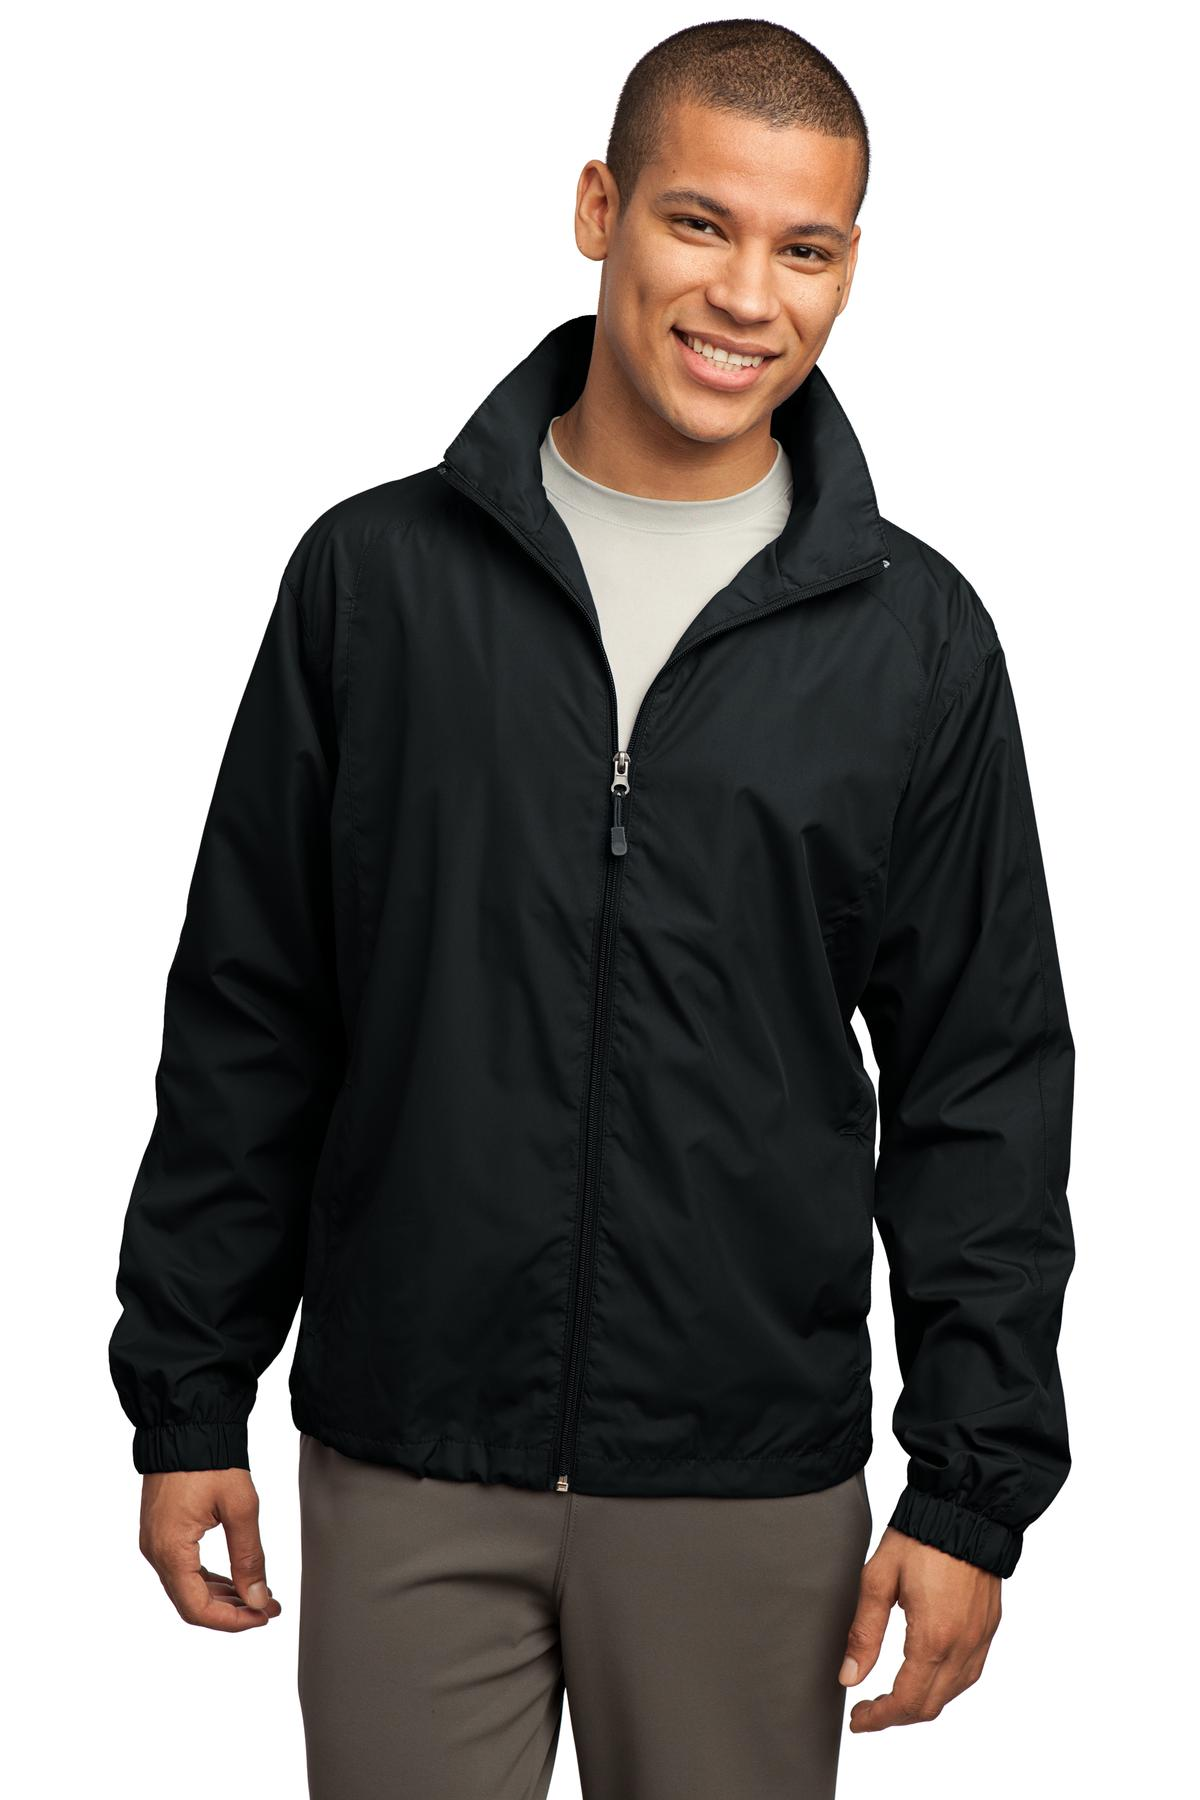 Sport-Tek ®  Full-Zip Wind Jacket. JST70 - Black